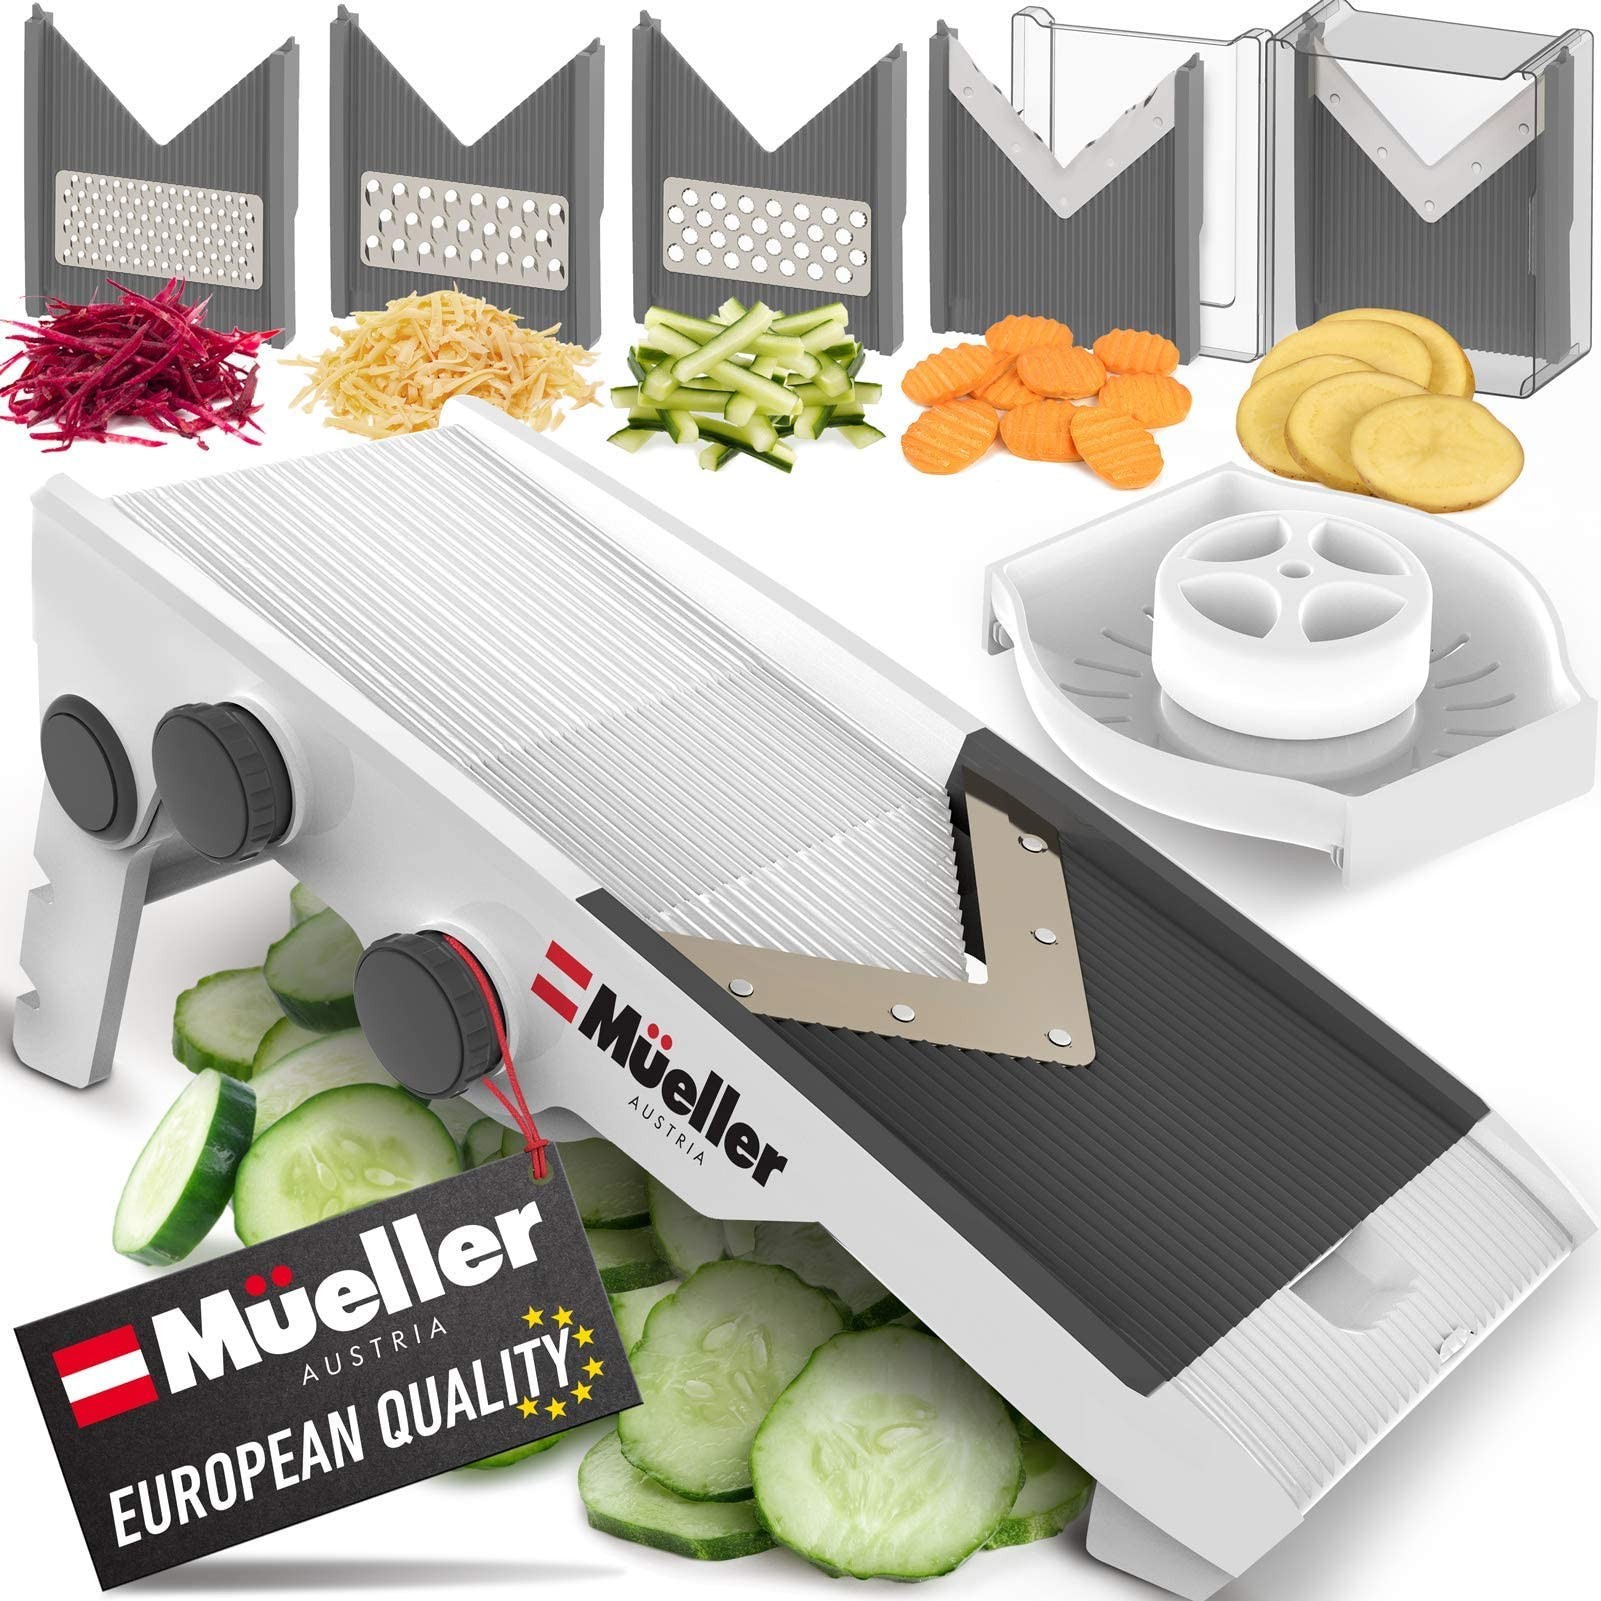 Mueller Austria Multi Blade Adjustable Mandoline Cheese/Vegetable Slicer, Cutter, Shredder with Precise Maximum Adjustability